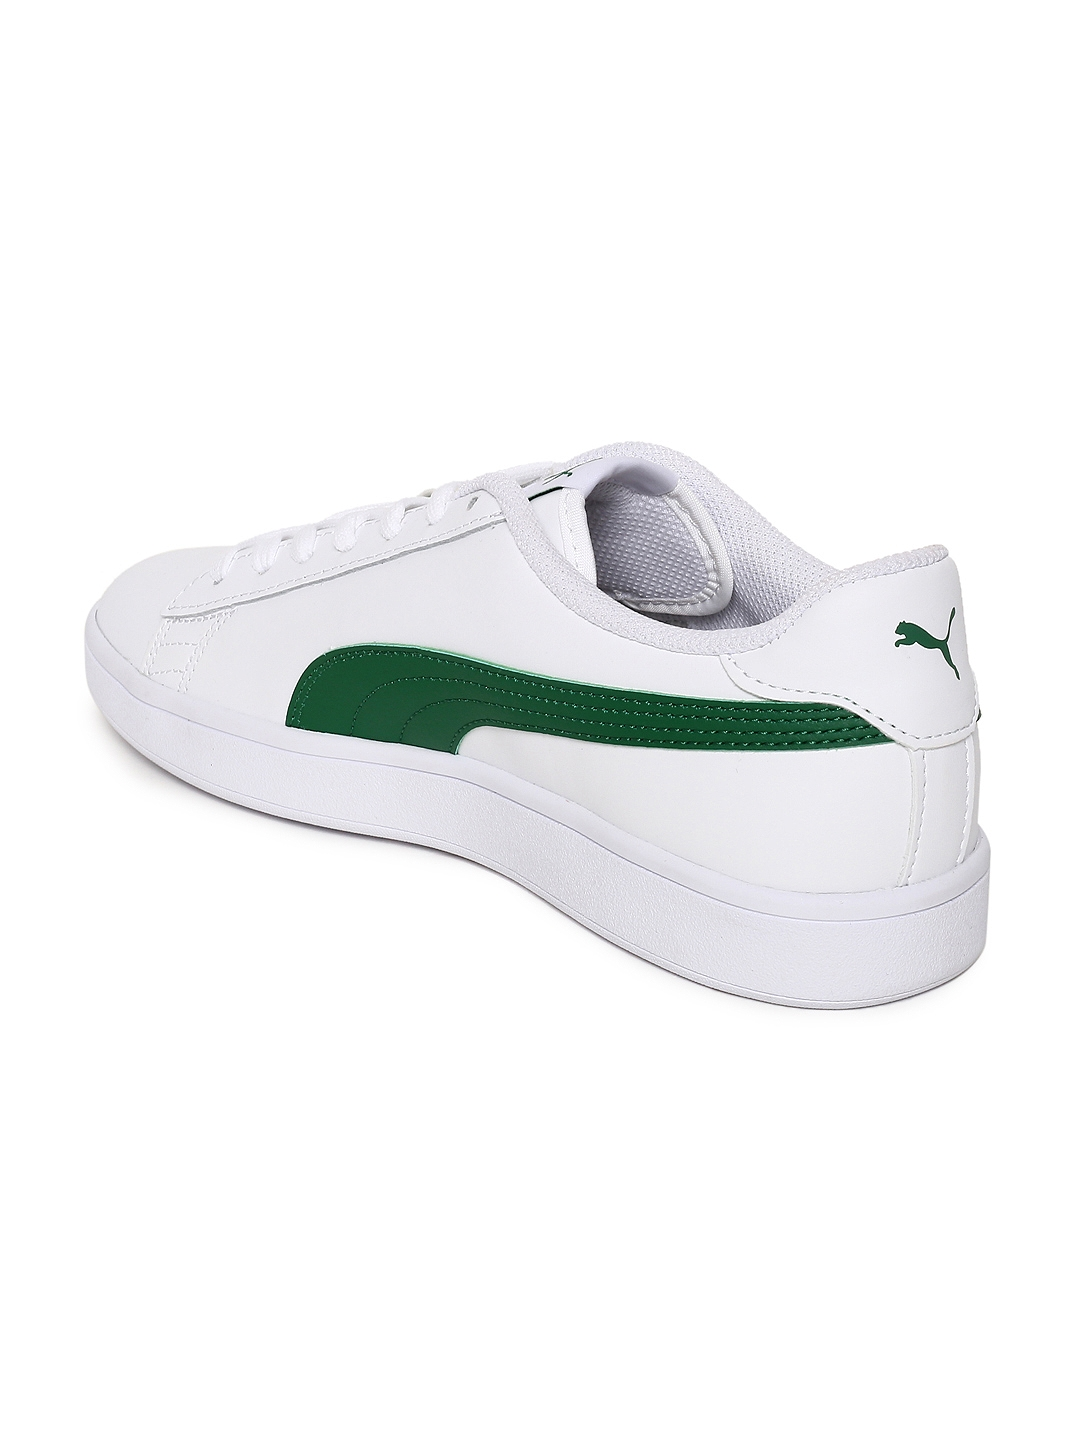 a1c0d8c230b3 Buy Puma Men White Smash V2 L Leather Sneakers - Casual Shoes for ...